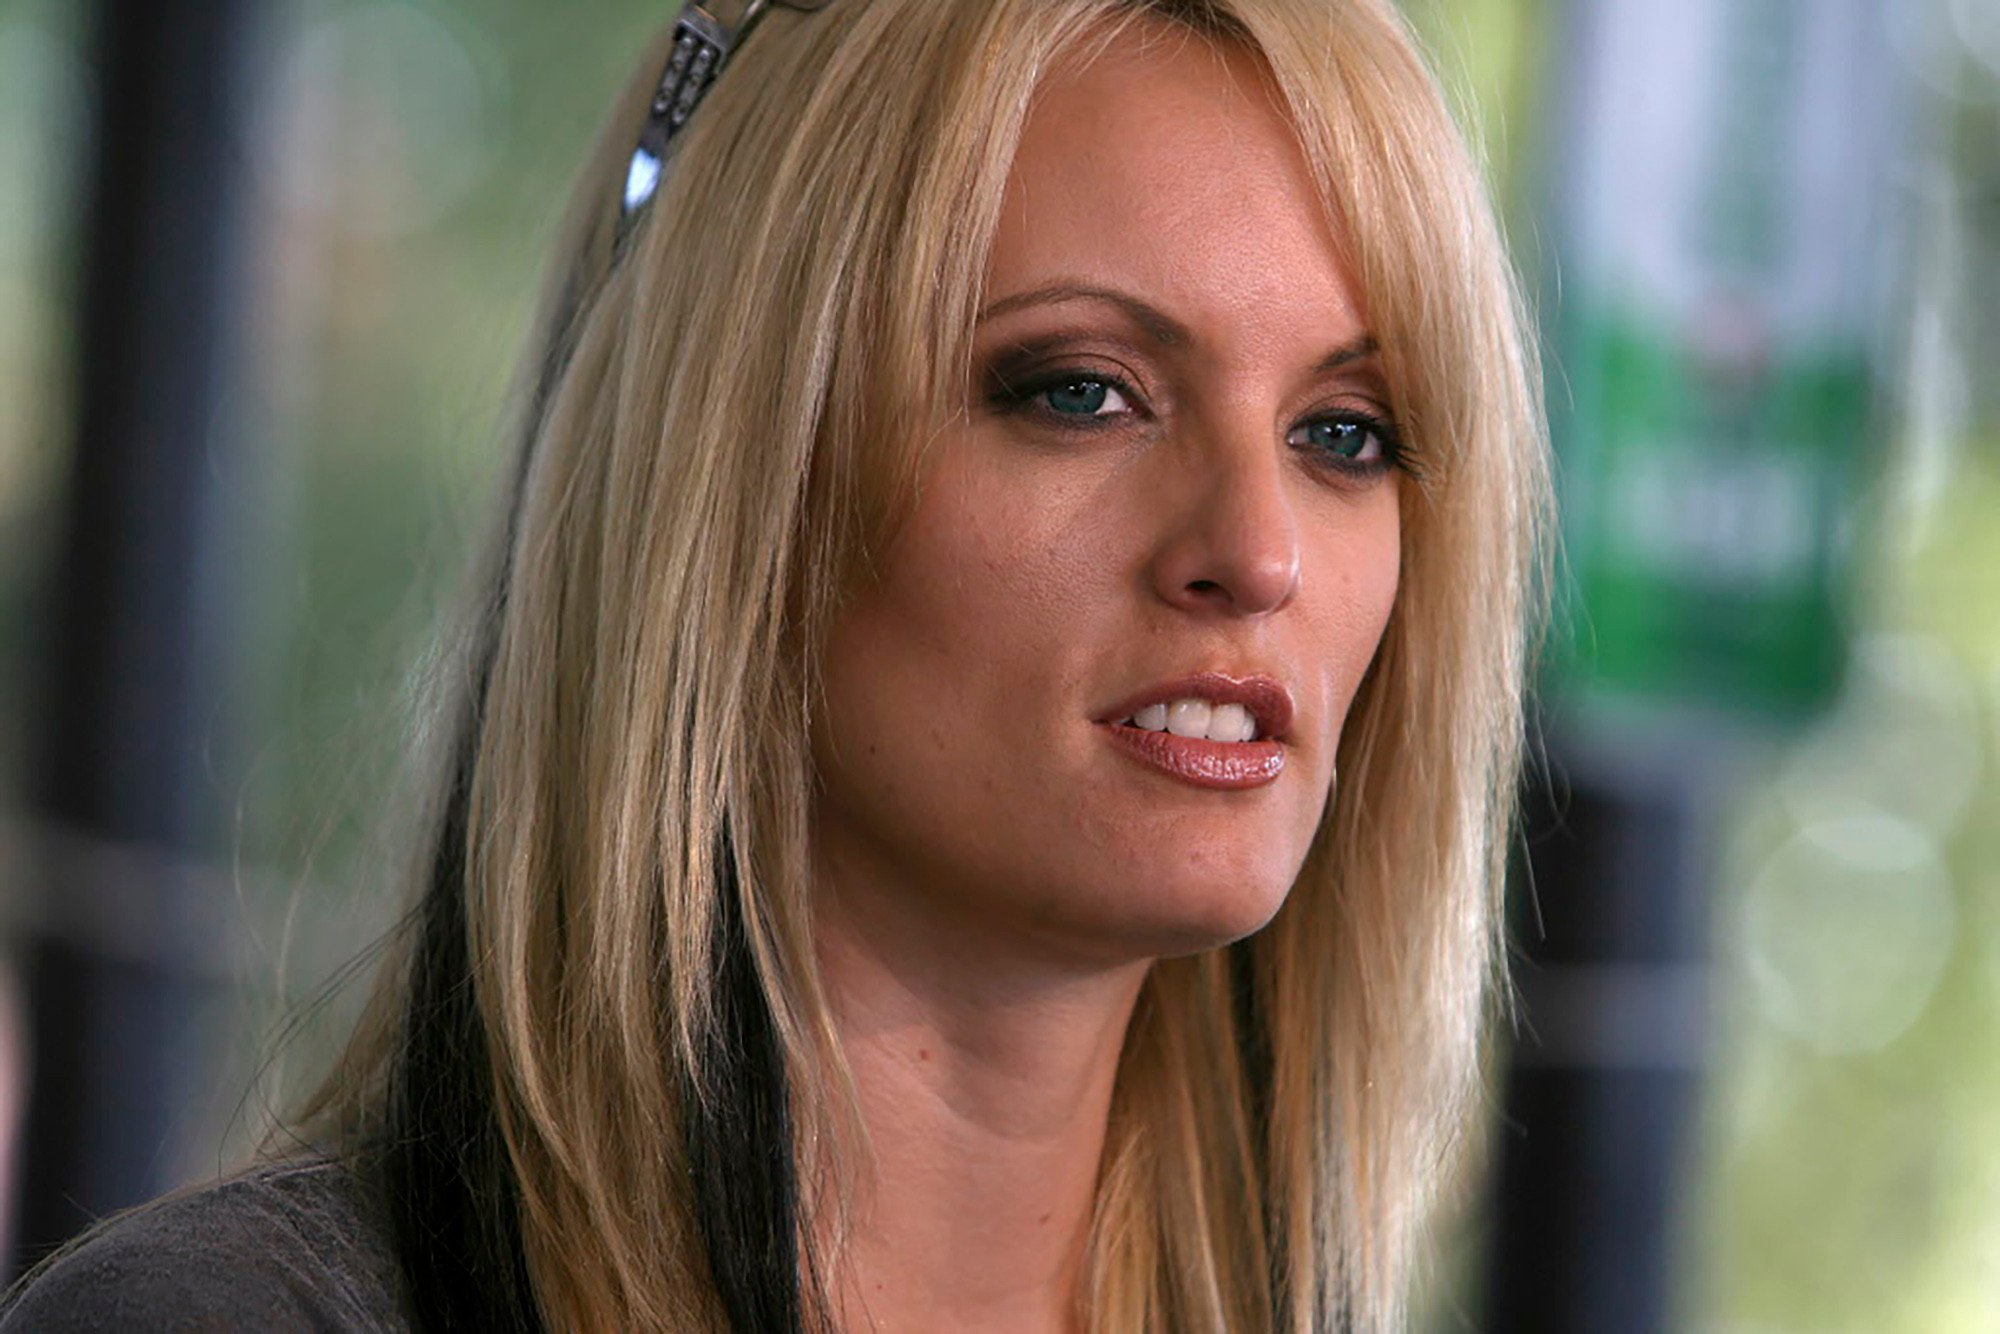 How Stormy Daniels responded when asked about alleged Trump tryst